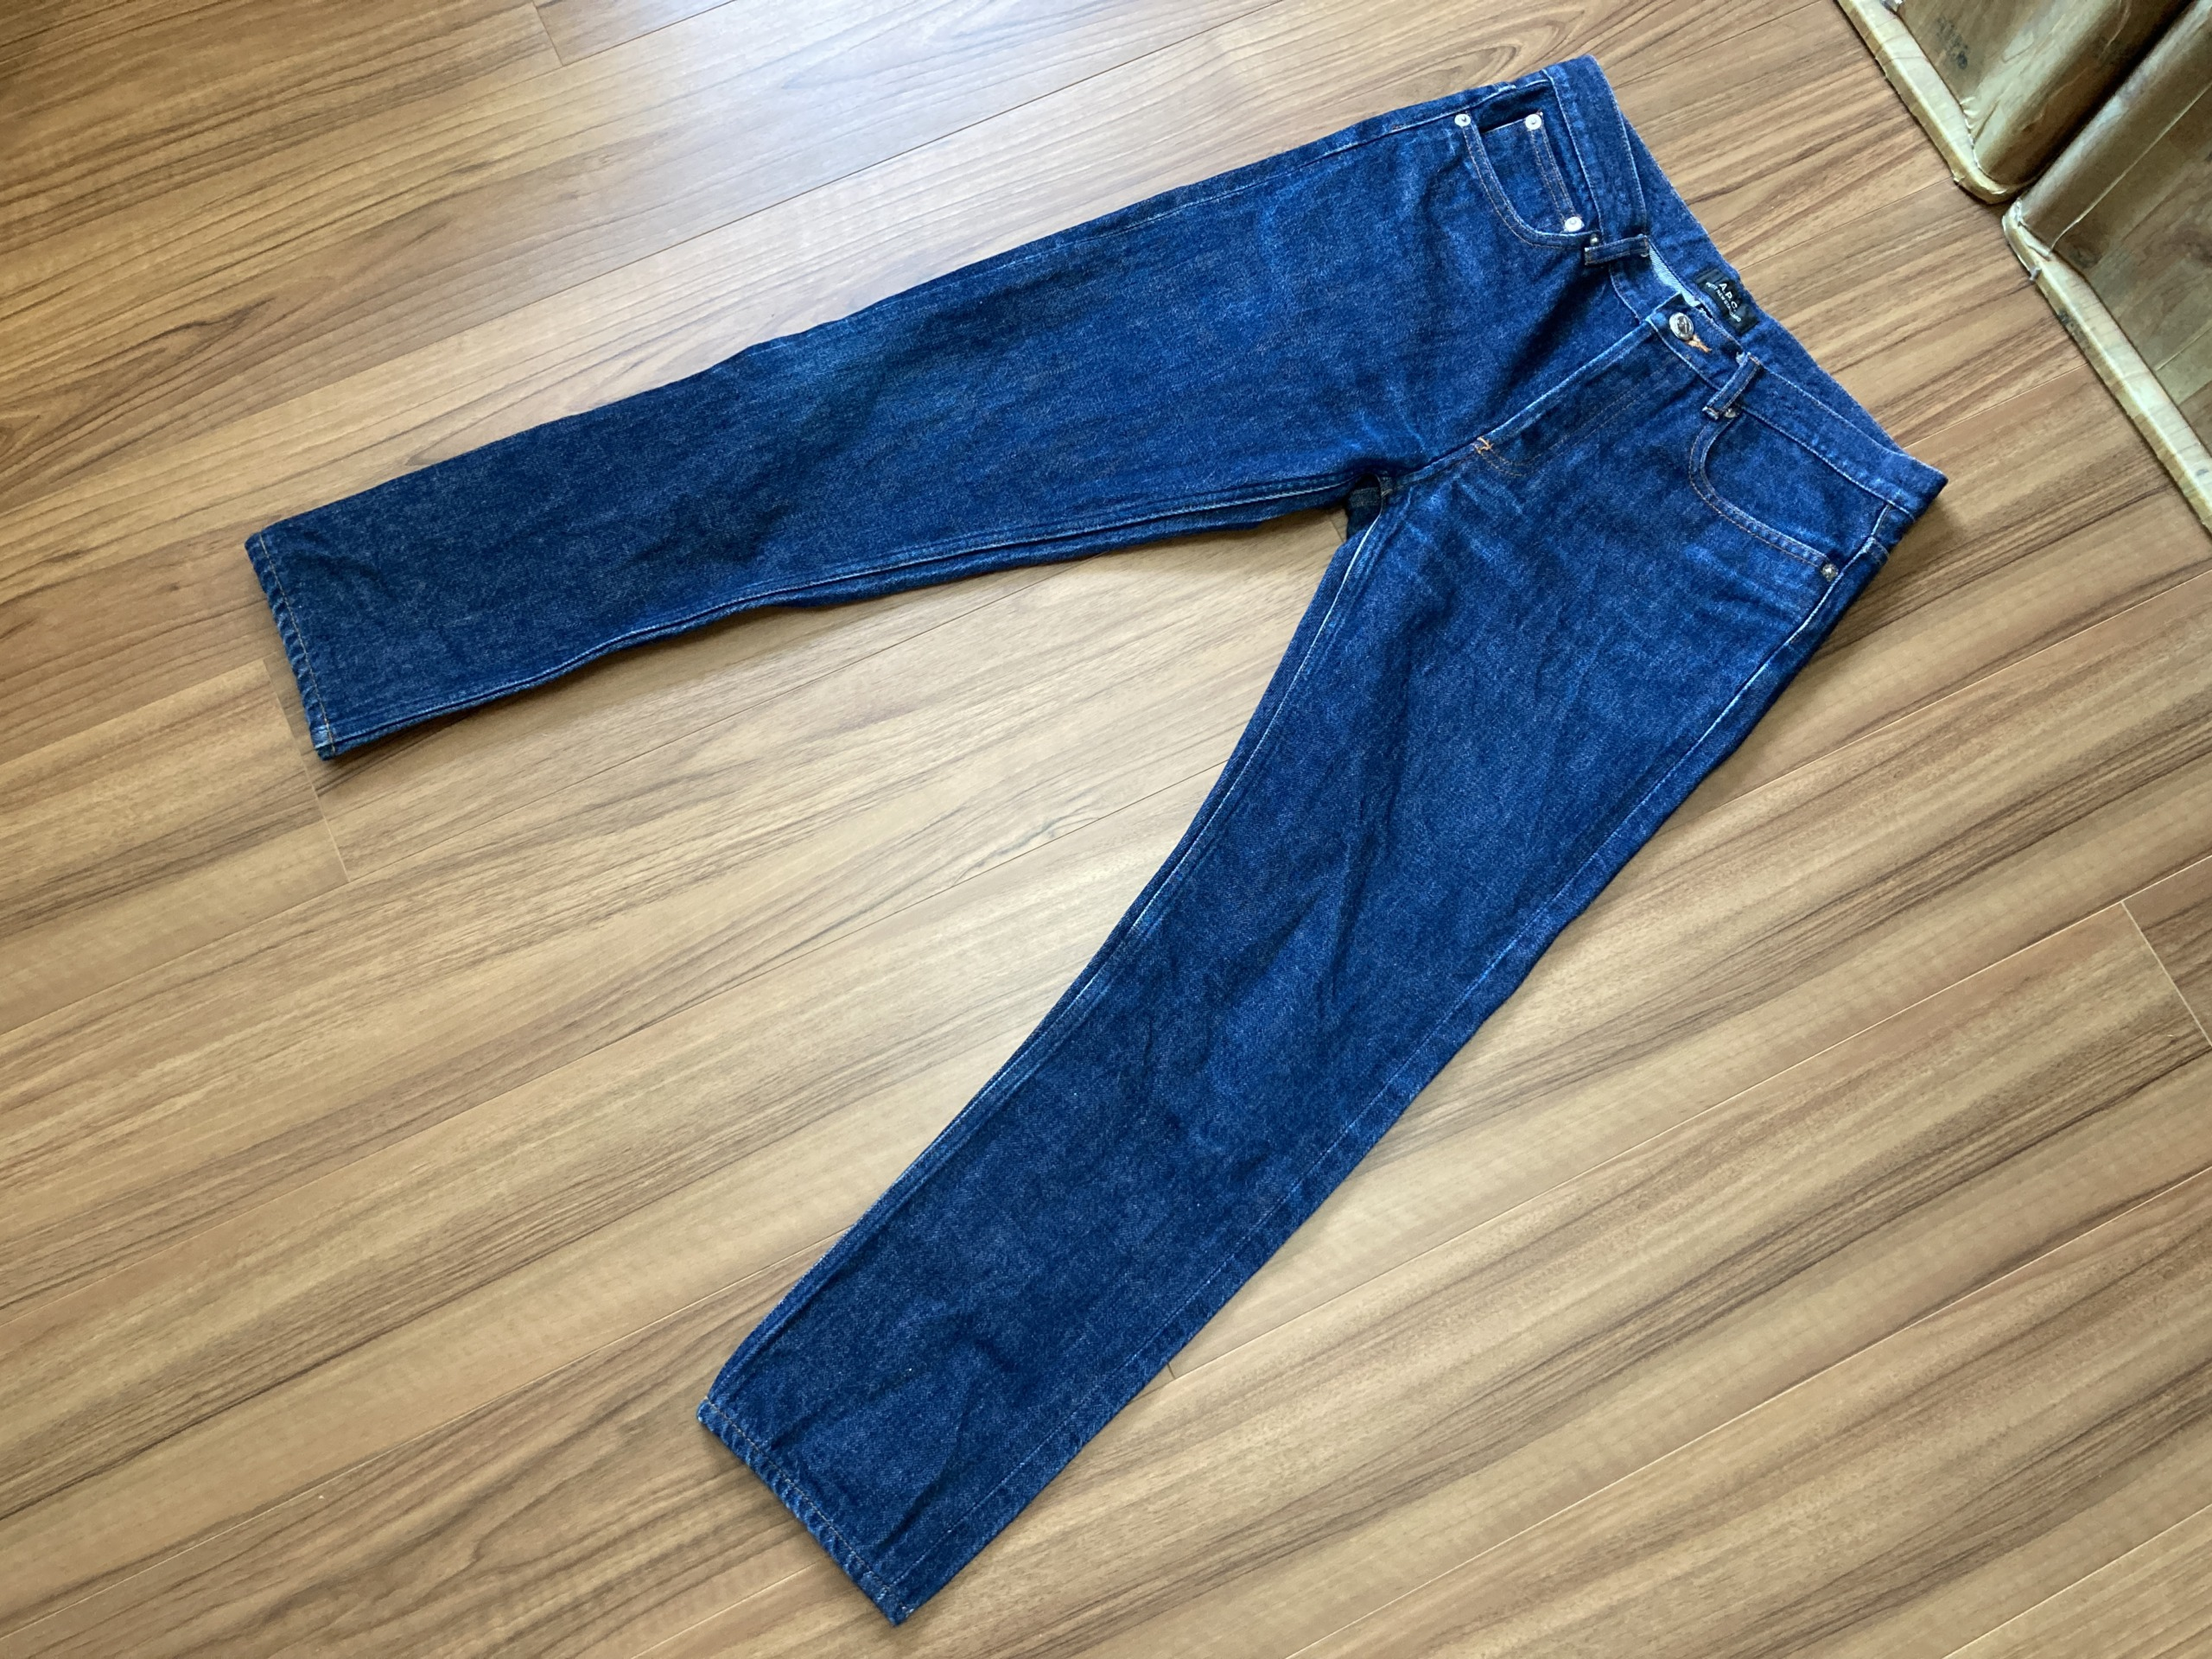 A.P.C. Petit New Standard エジング 経年変化 9回洗濯 全体観